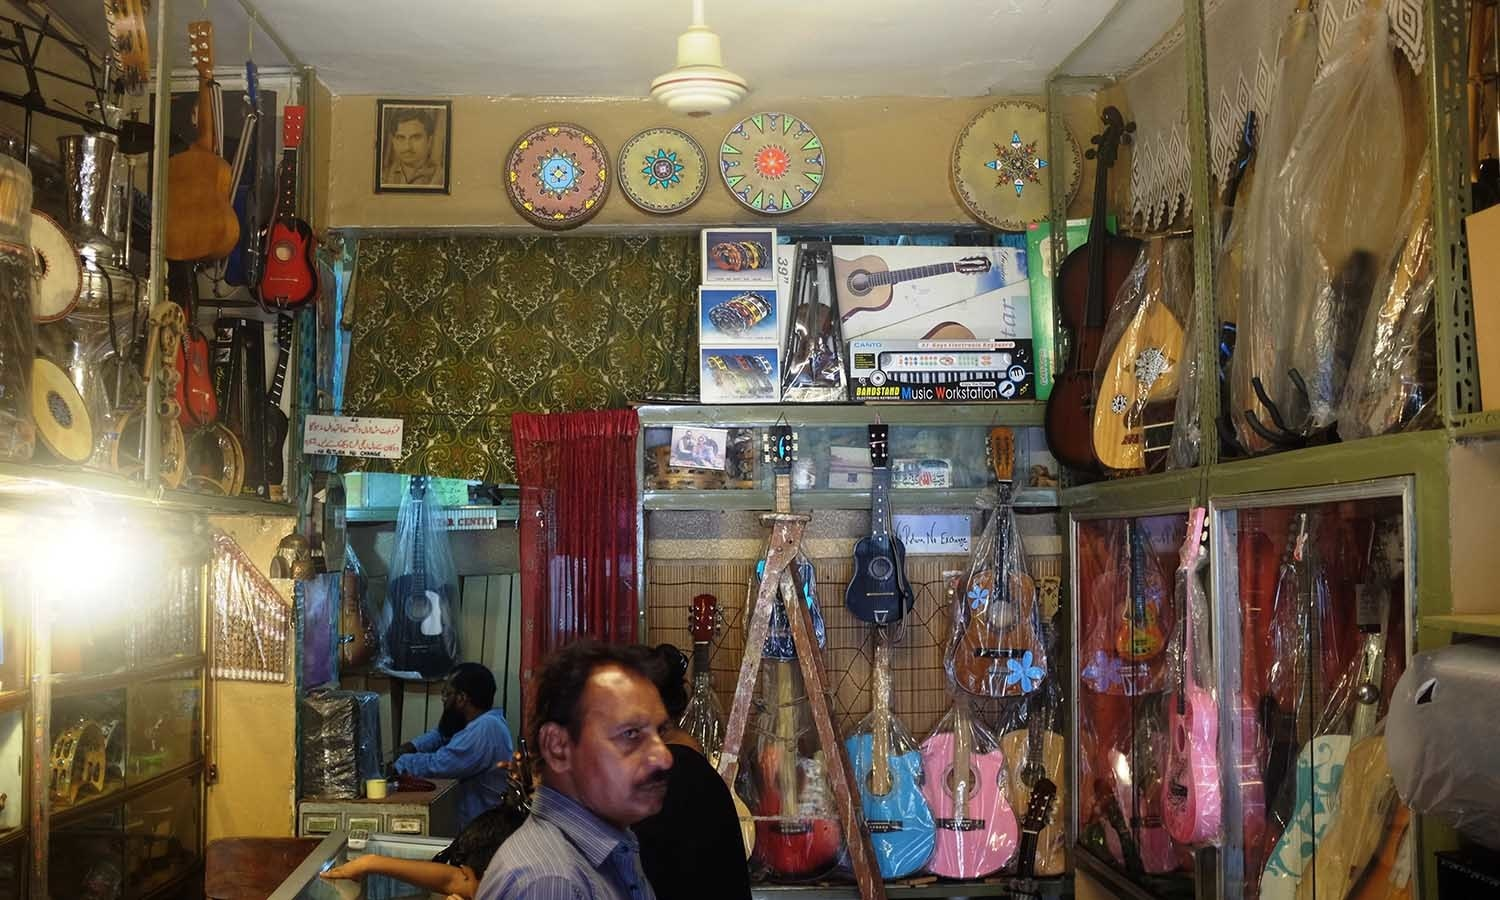 Sohail Music Palace has to be one of the most well-assorted music shops in the city.